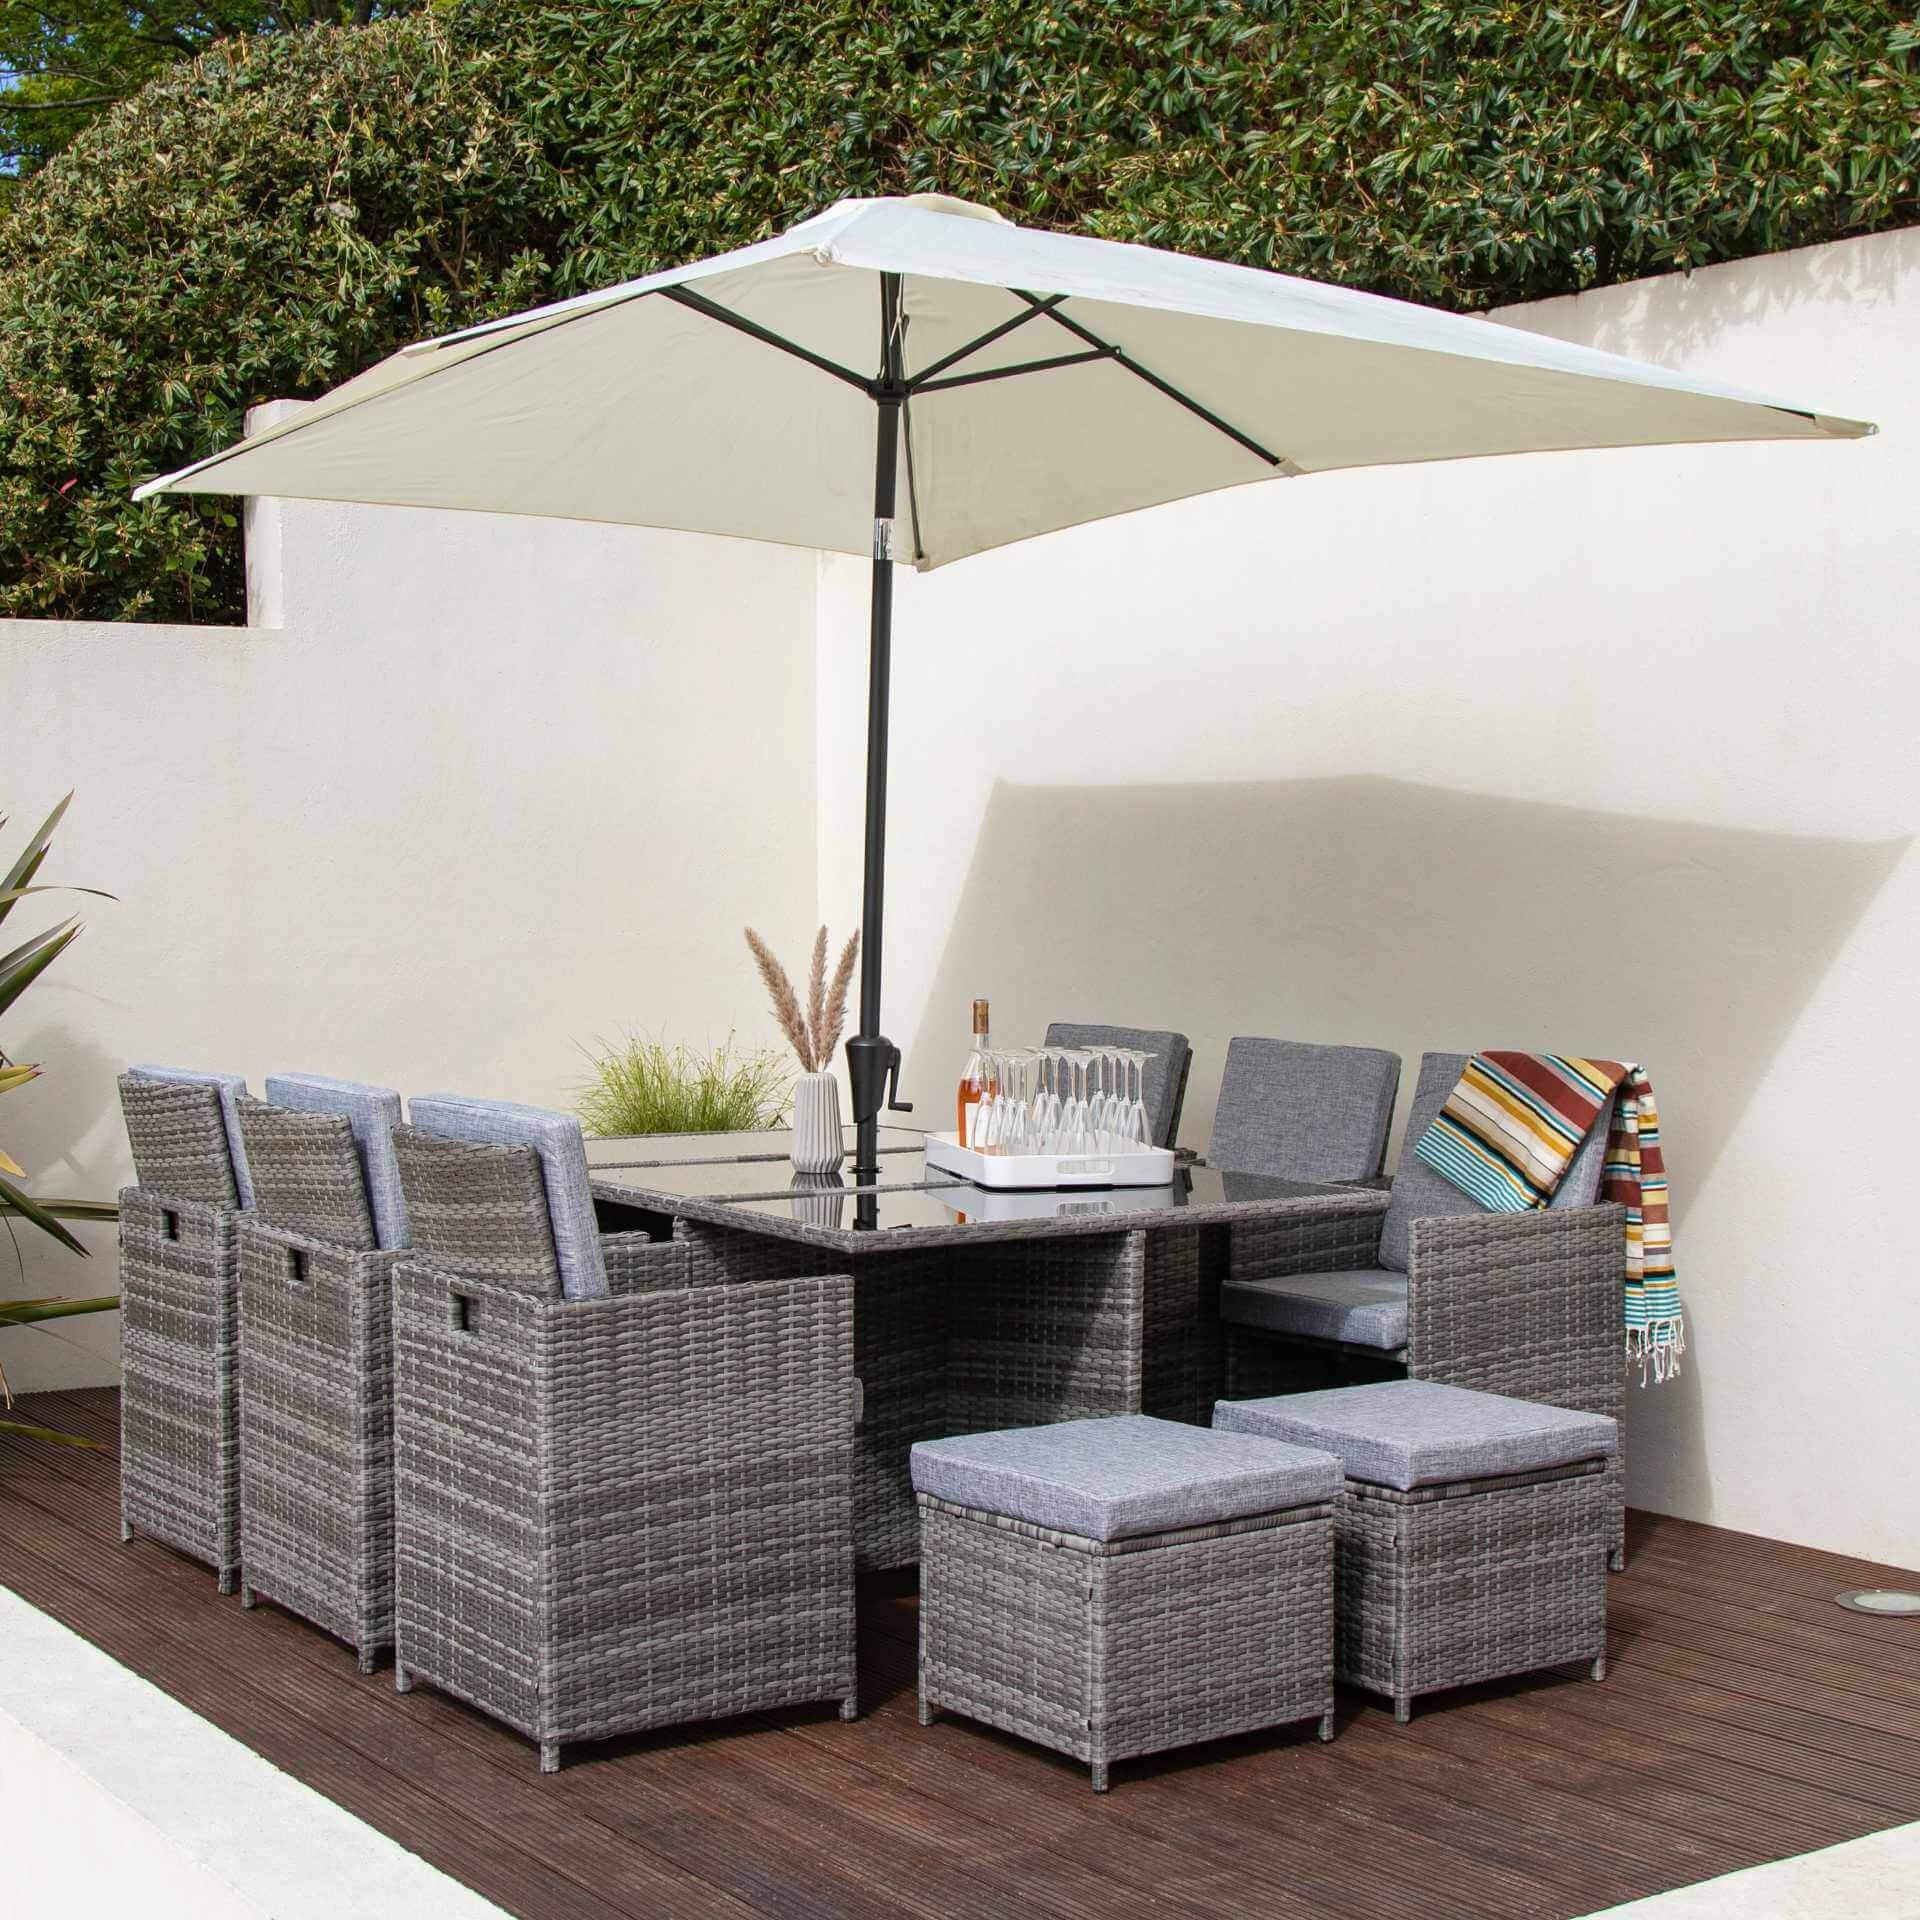 10 Seat Rattan Cube Outdoor Dining Set with Premium Parasol and Parasol Rain Cover - Grey Weave - Laura James